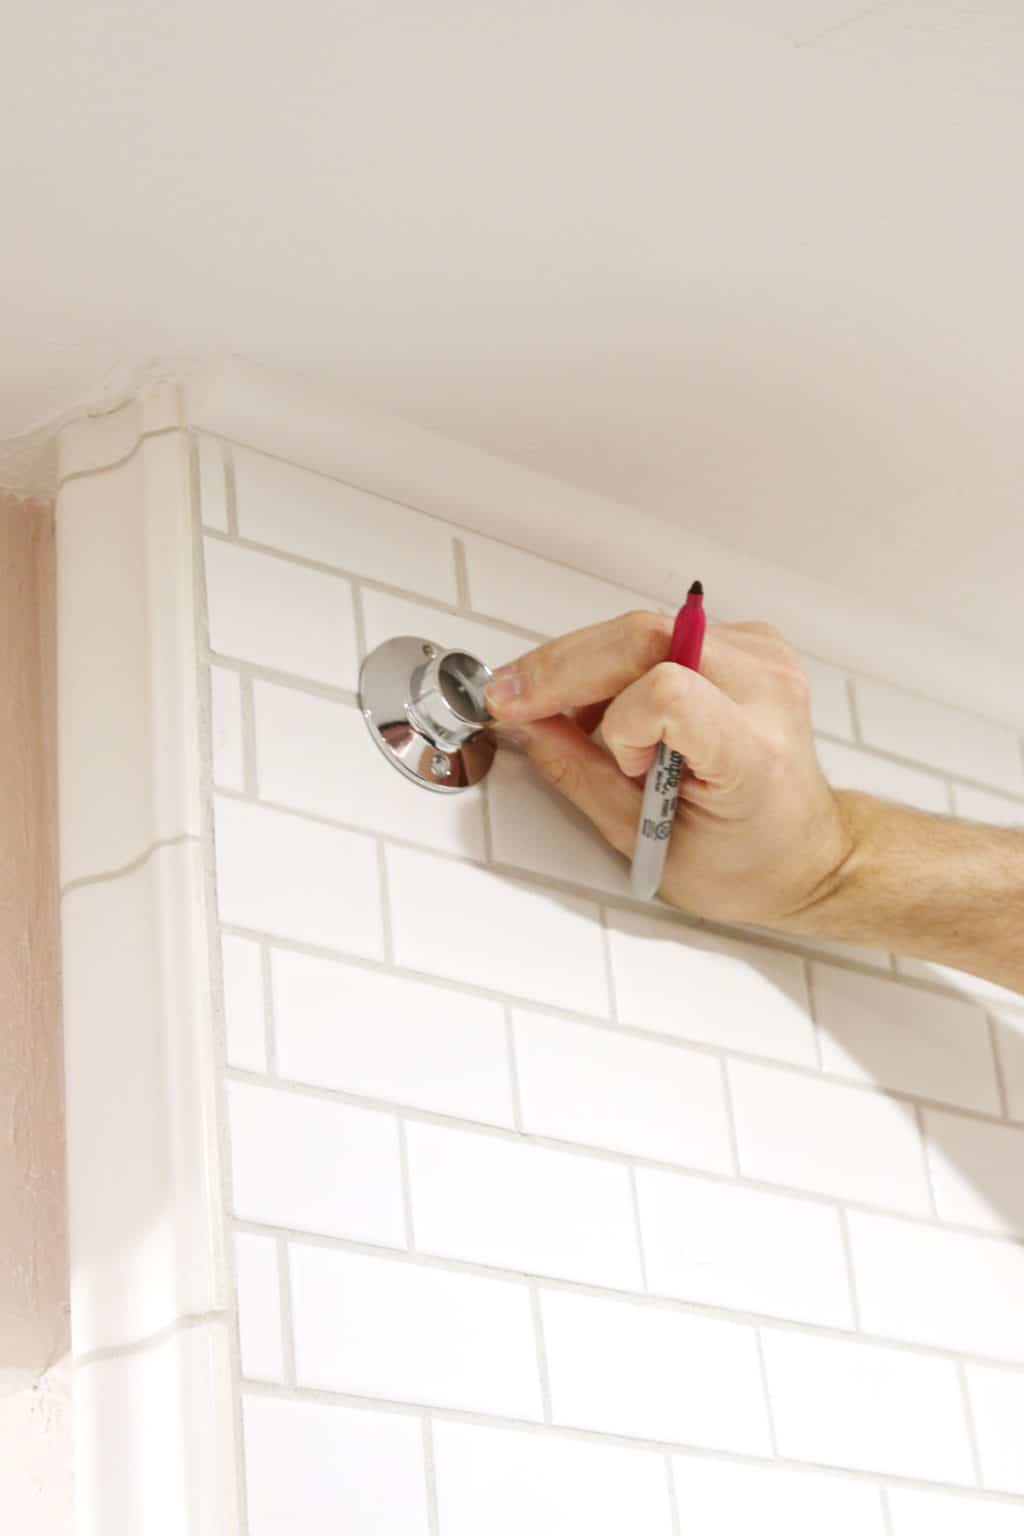 How To Drill Into Tile To Hang A Shower Curtain Chris